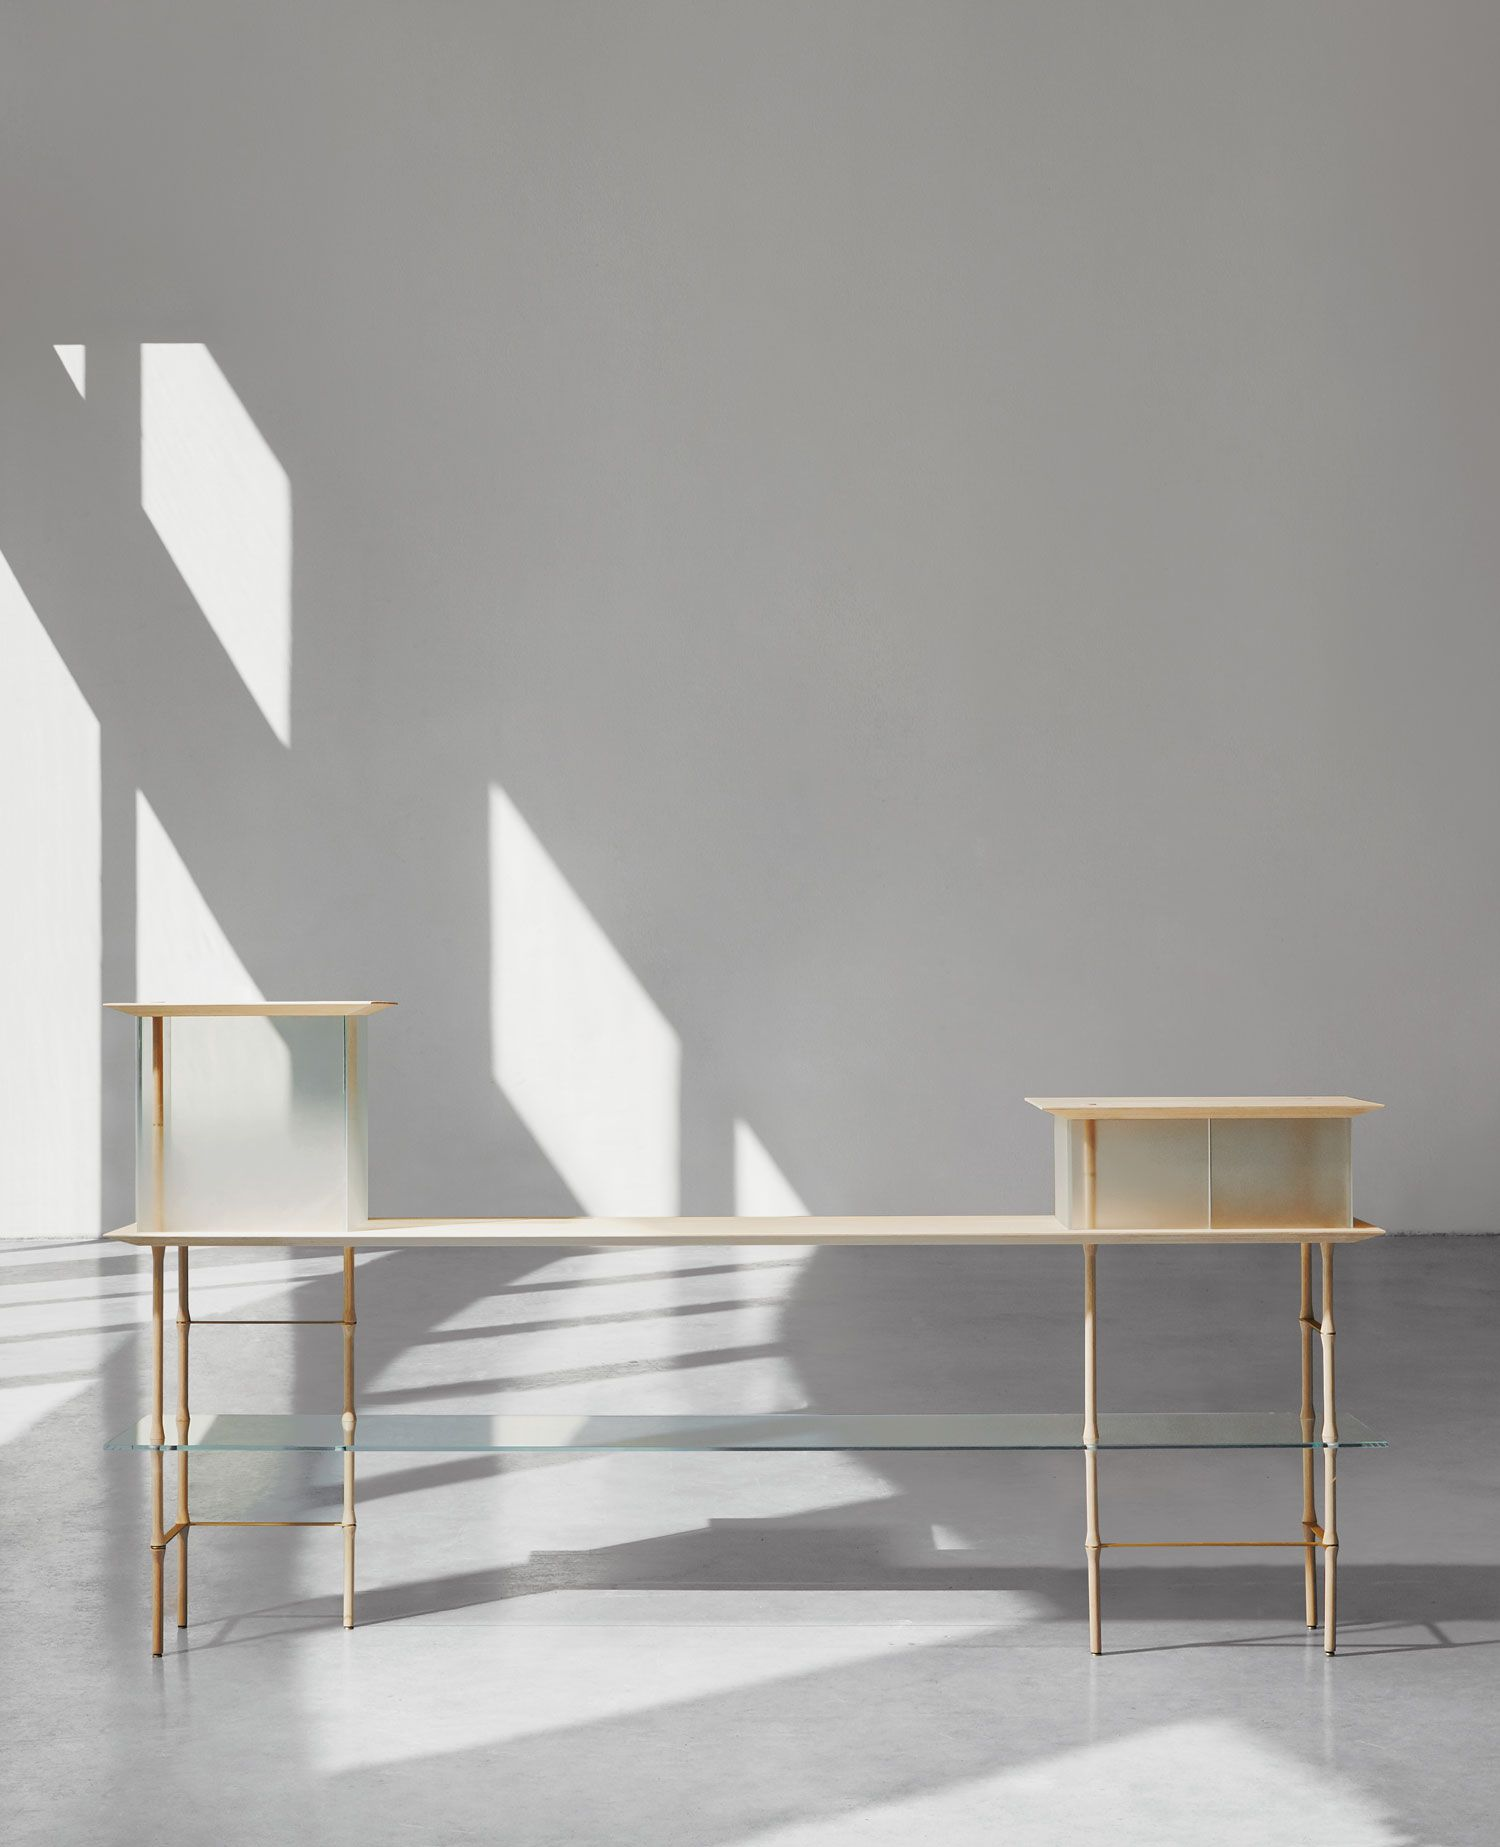 Bon Palafitte, Translating To U201cpilesu201d Or U201cslitsu201d, Is A Limited Edition Storage  Collection Made Of Layered Bamboo, Brass And Glass Designed By Giacomo Moor.